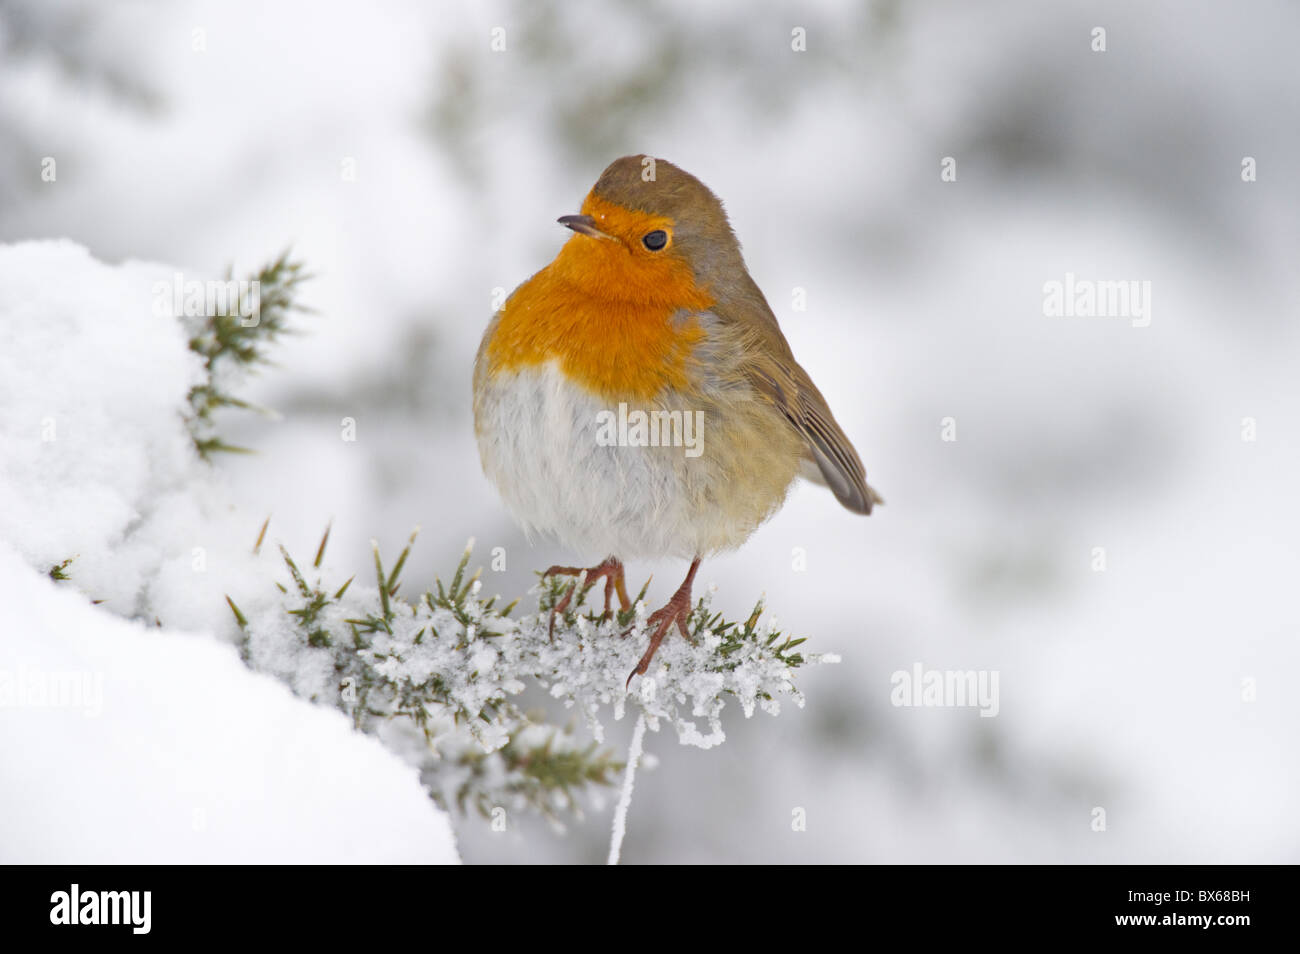 Robin(Erithacus rubecula) perched in the snow. - Stock Image